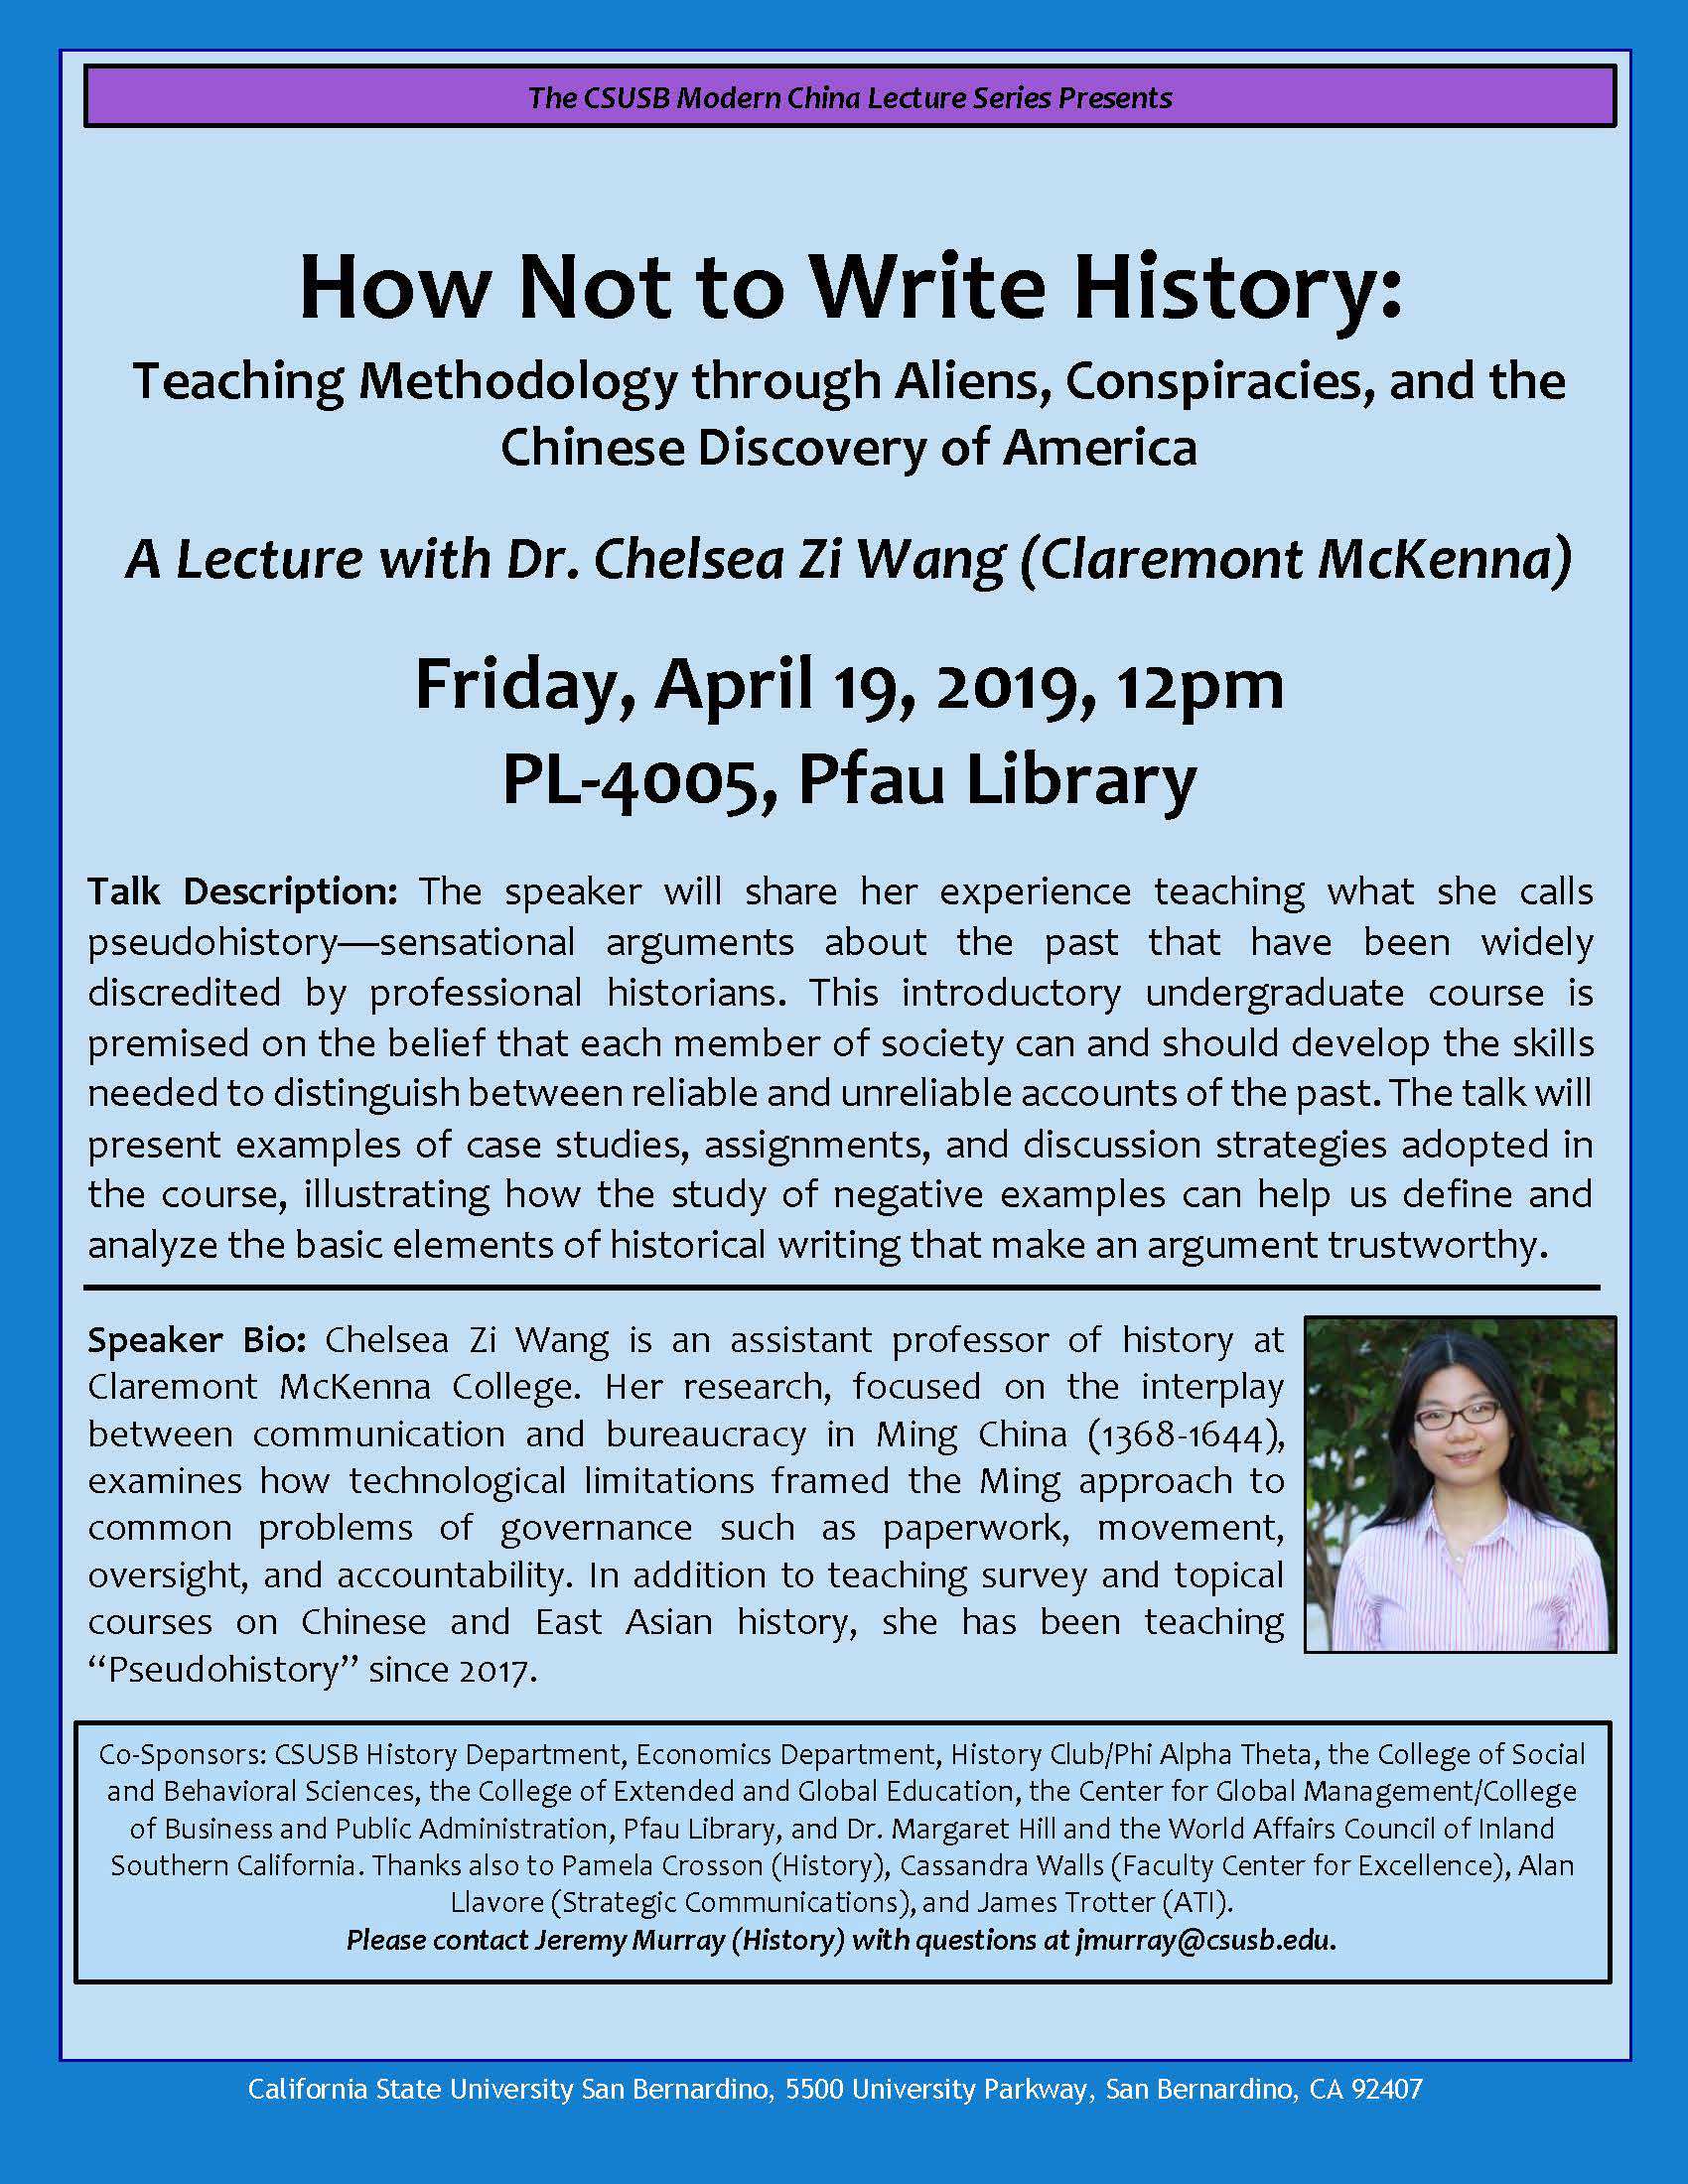 Examination of 'pseudohistory' and how to uncover trustworthy accounts focus of next Modern China Lecture